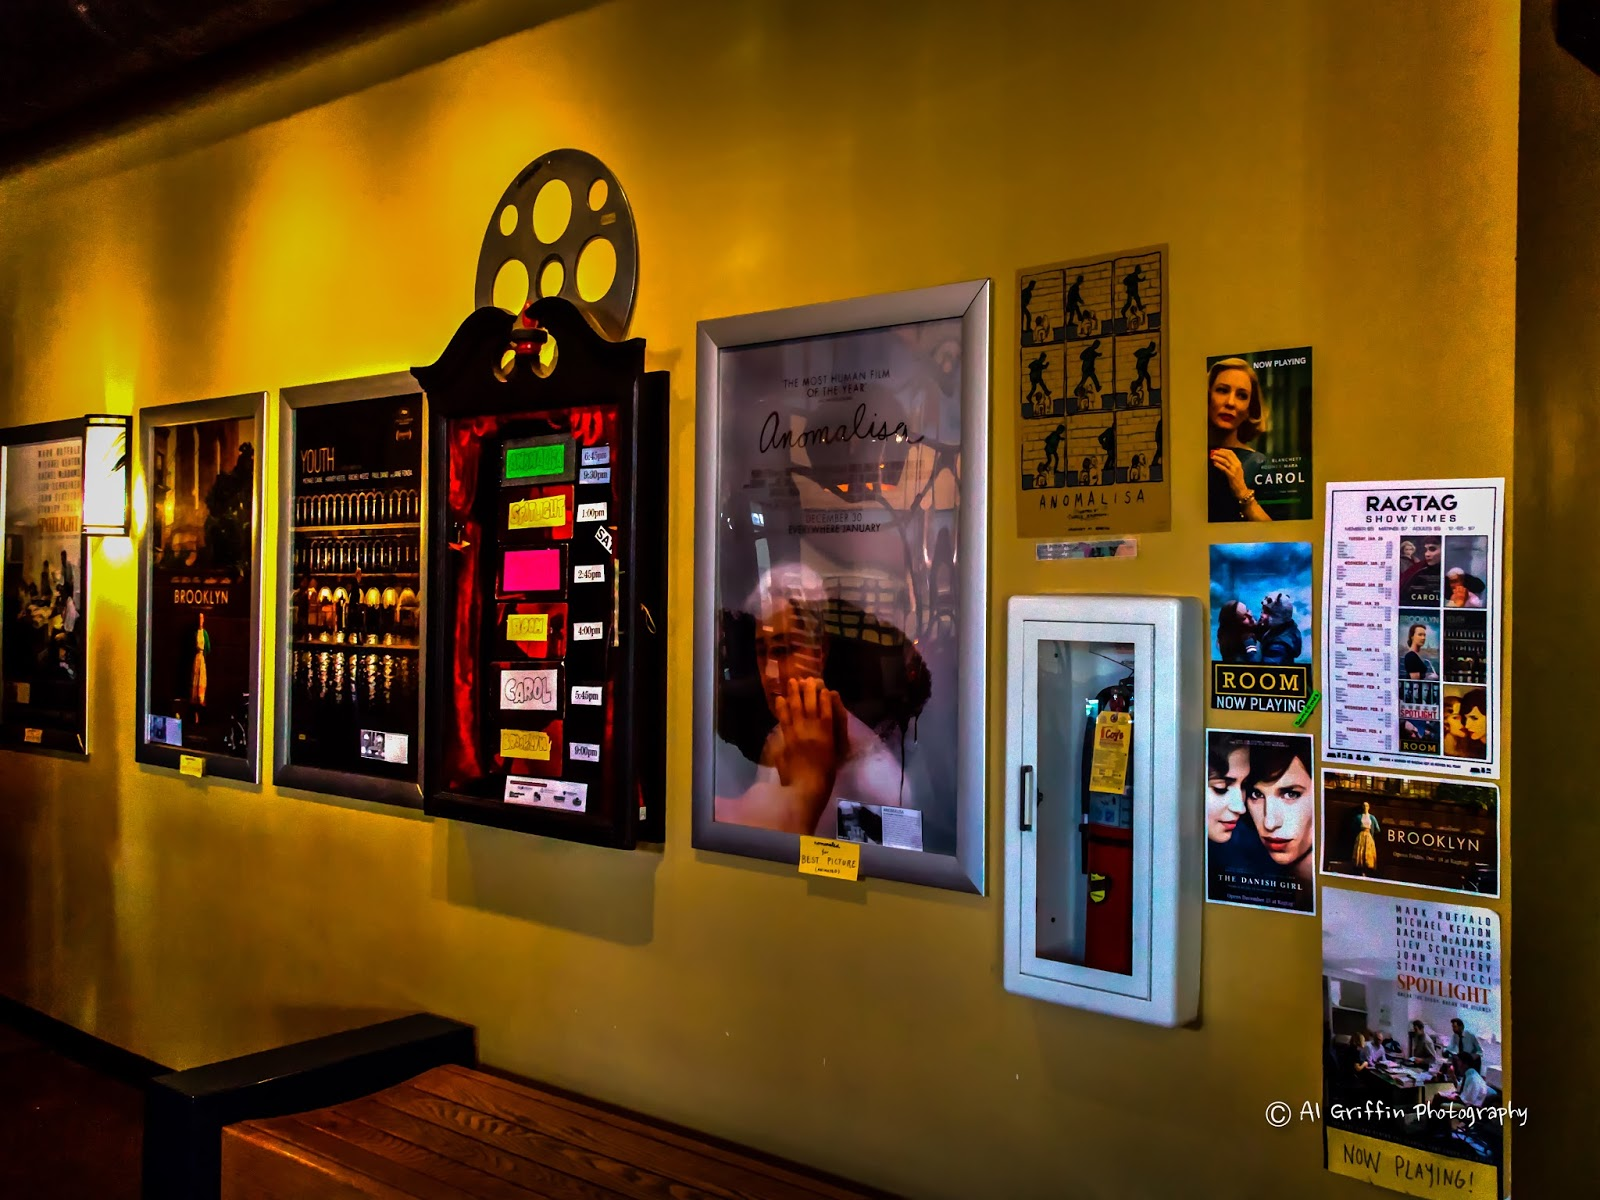 ragtag cinema and uprise bakery columbia mo our eyes upon missouri ragtag s declared mission is to champion independent film and media art and to serve film communities both locally and globally the theater grew from the